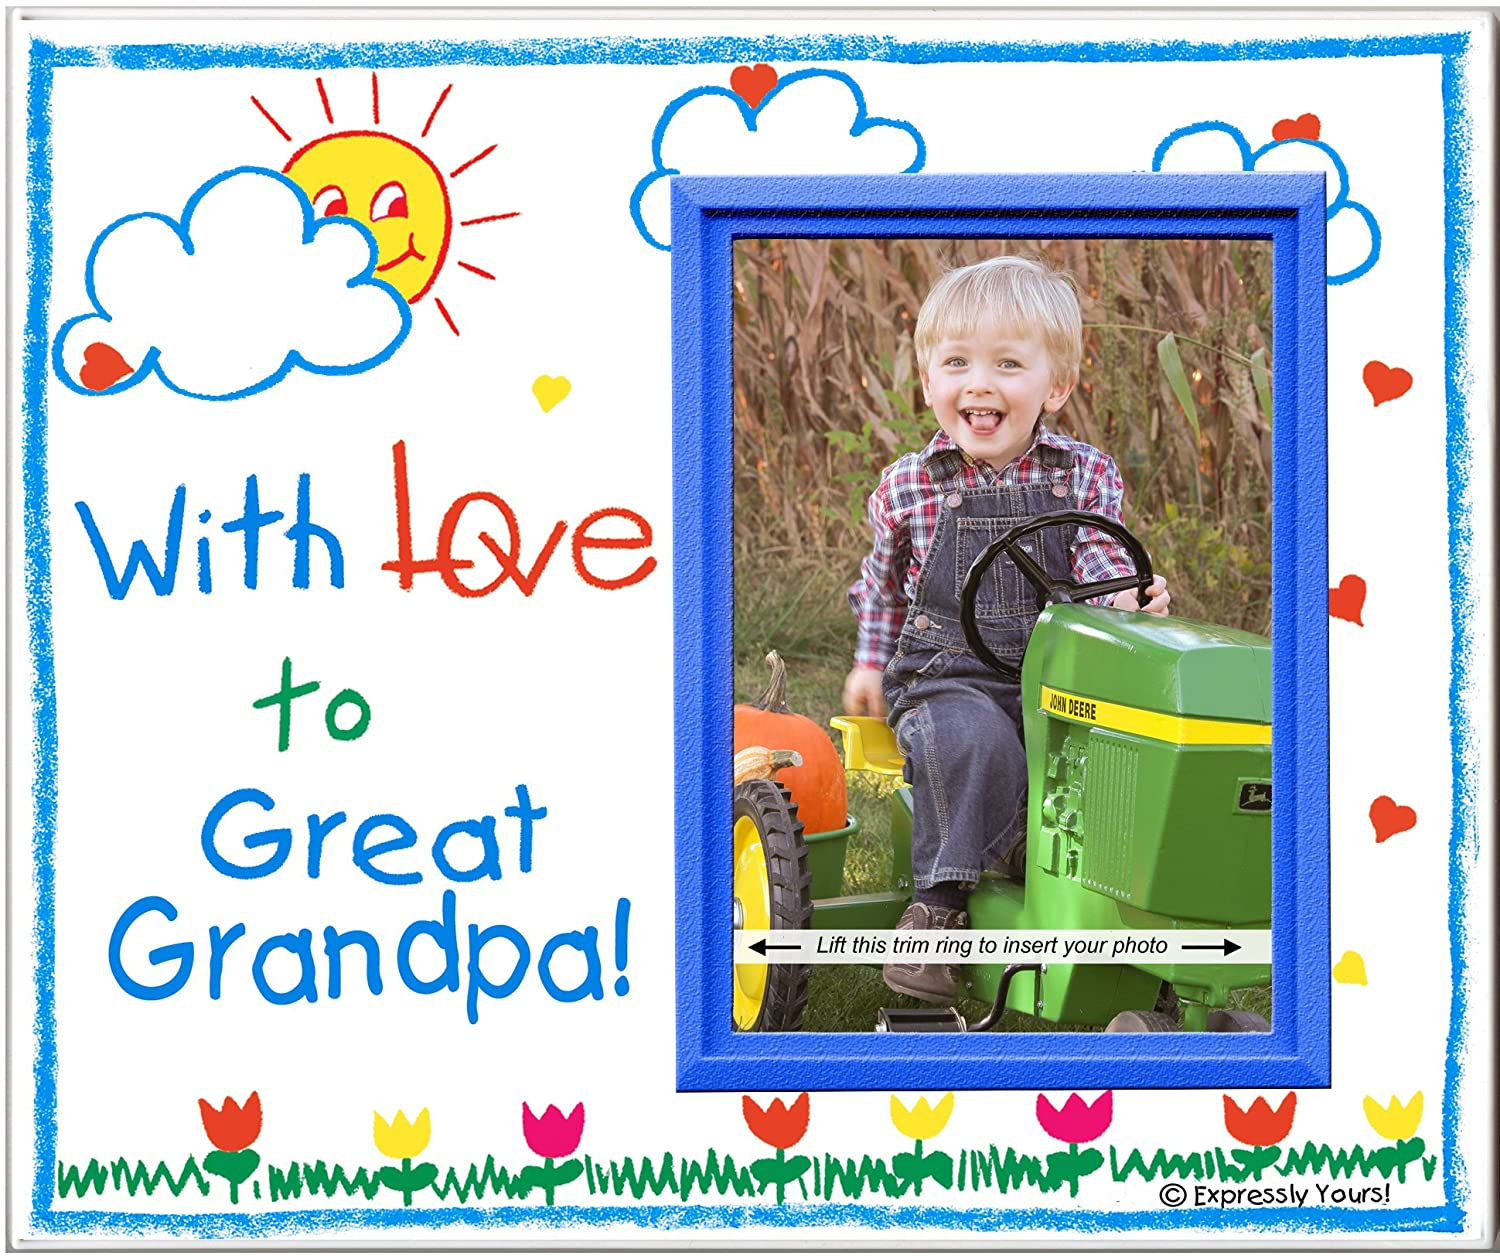 Amazon.com - With Love to Great Grandpa! - Picture Frame Gift ...